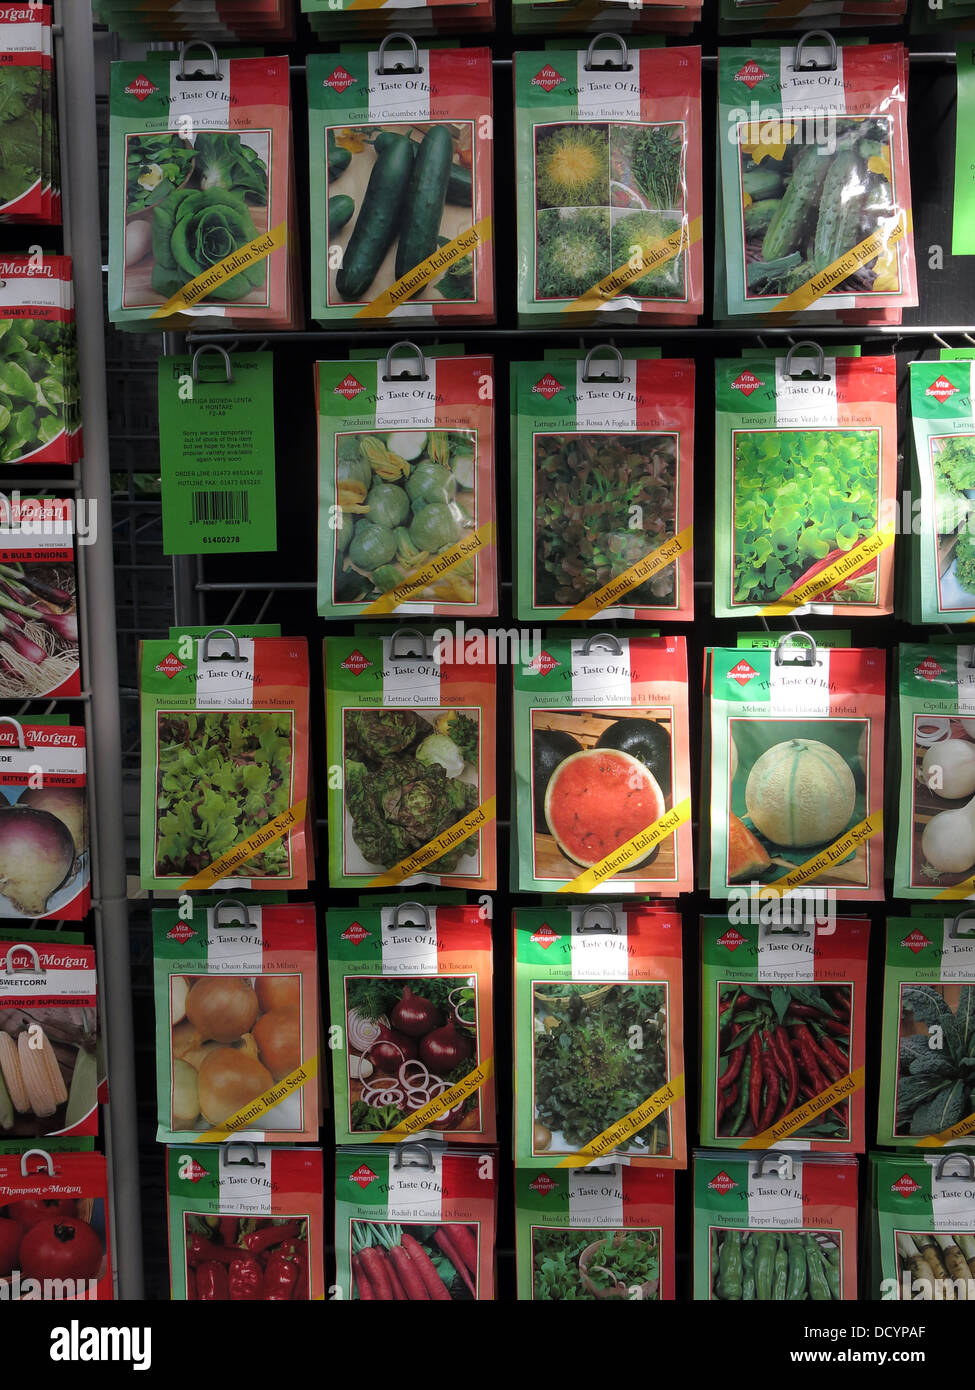 Vita Sementi brand Garden Allotment Seed packets in garden centre / supermarket, now popular again th Great Britain - Stock Image